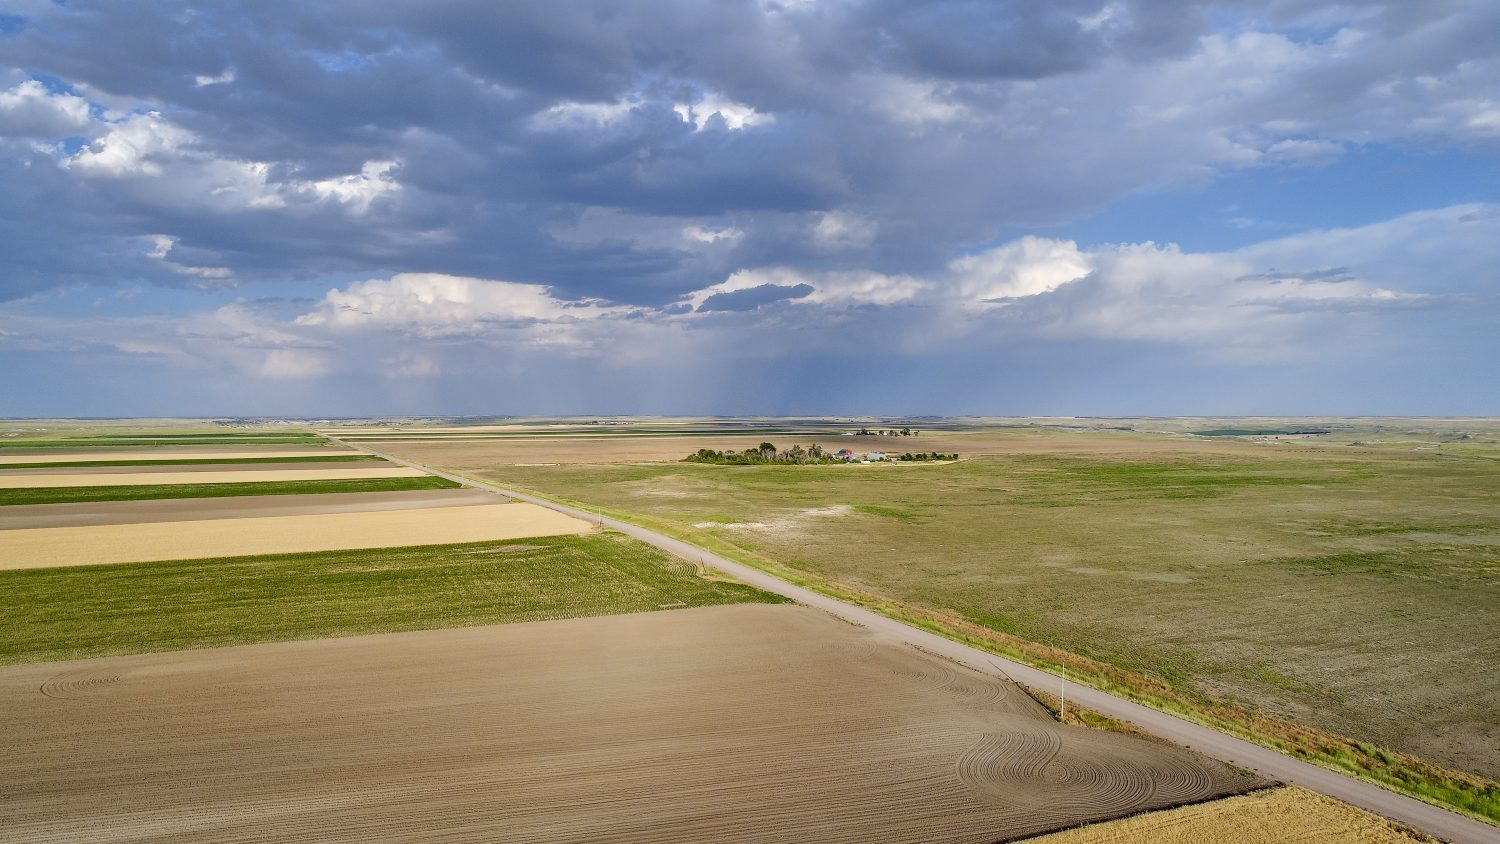 Rural Nebraska Landscape In Aerial View